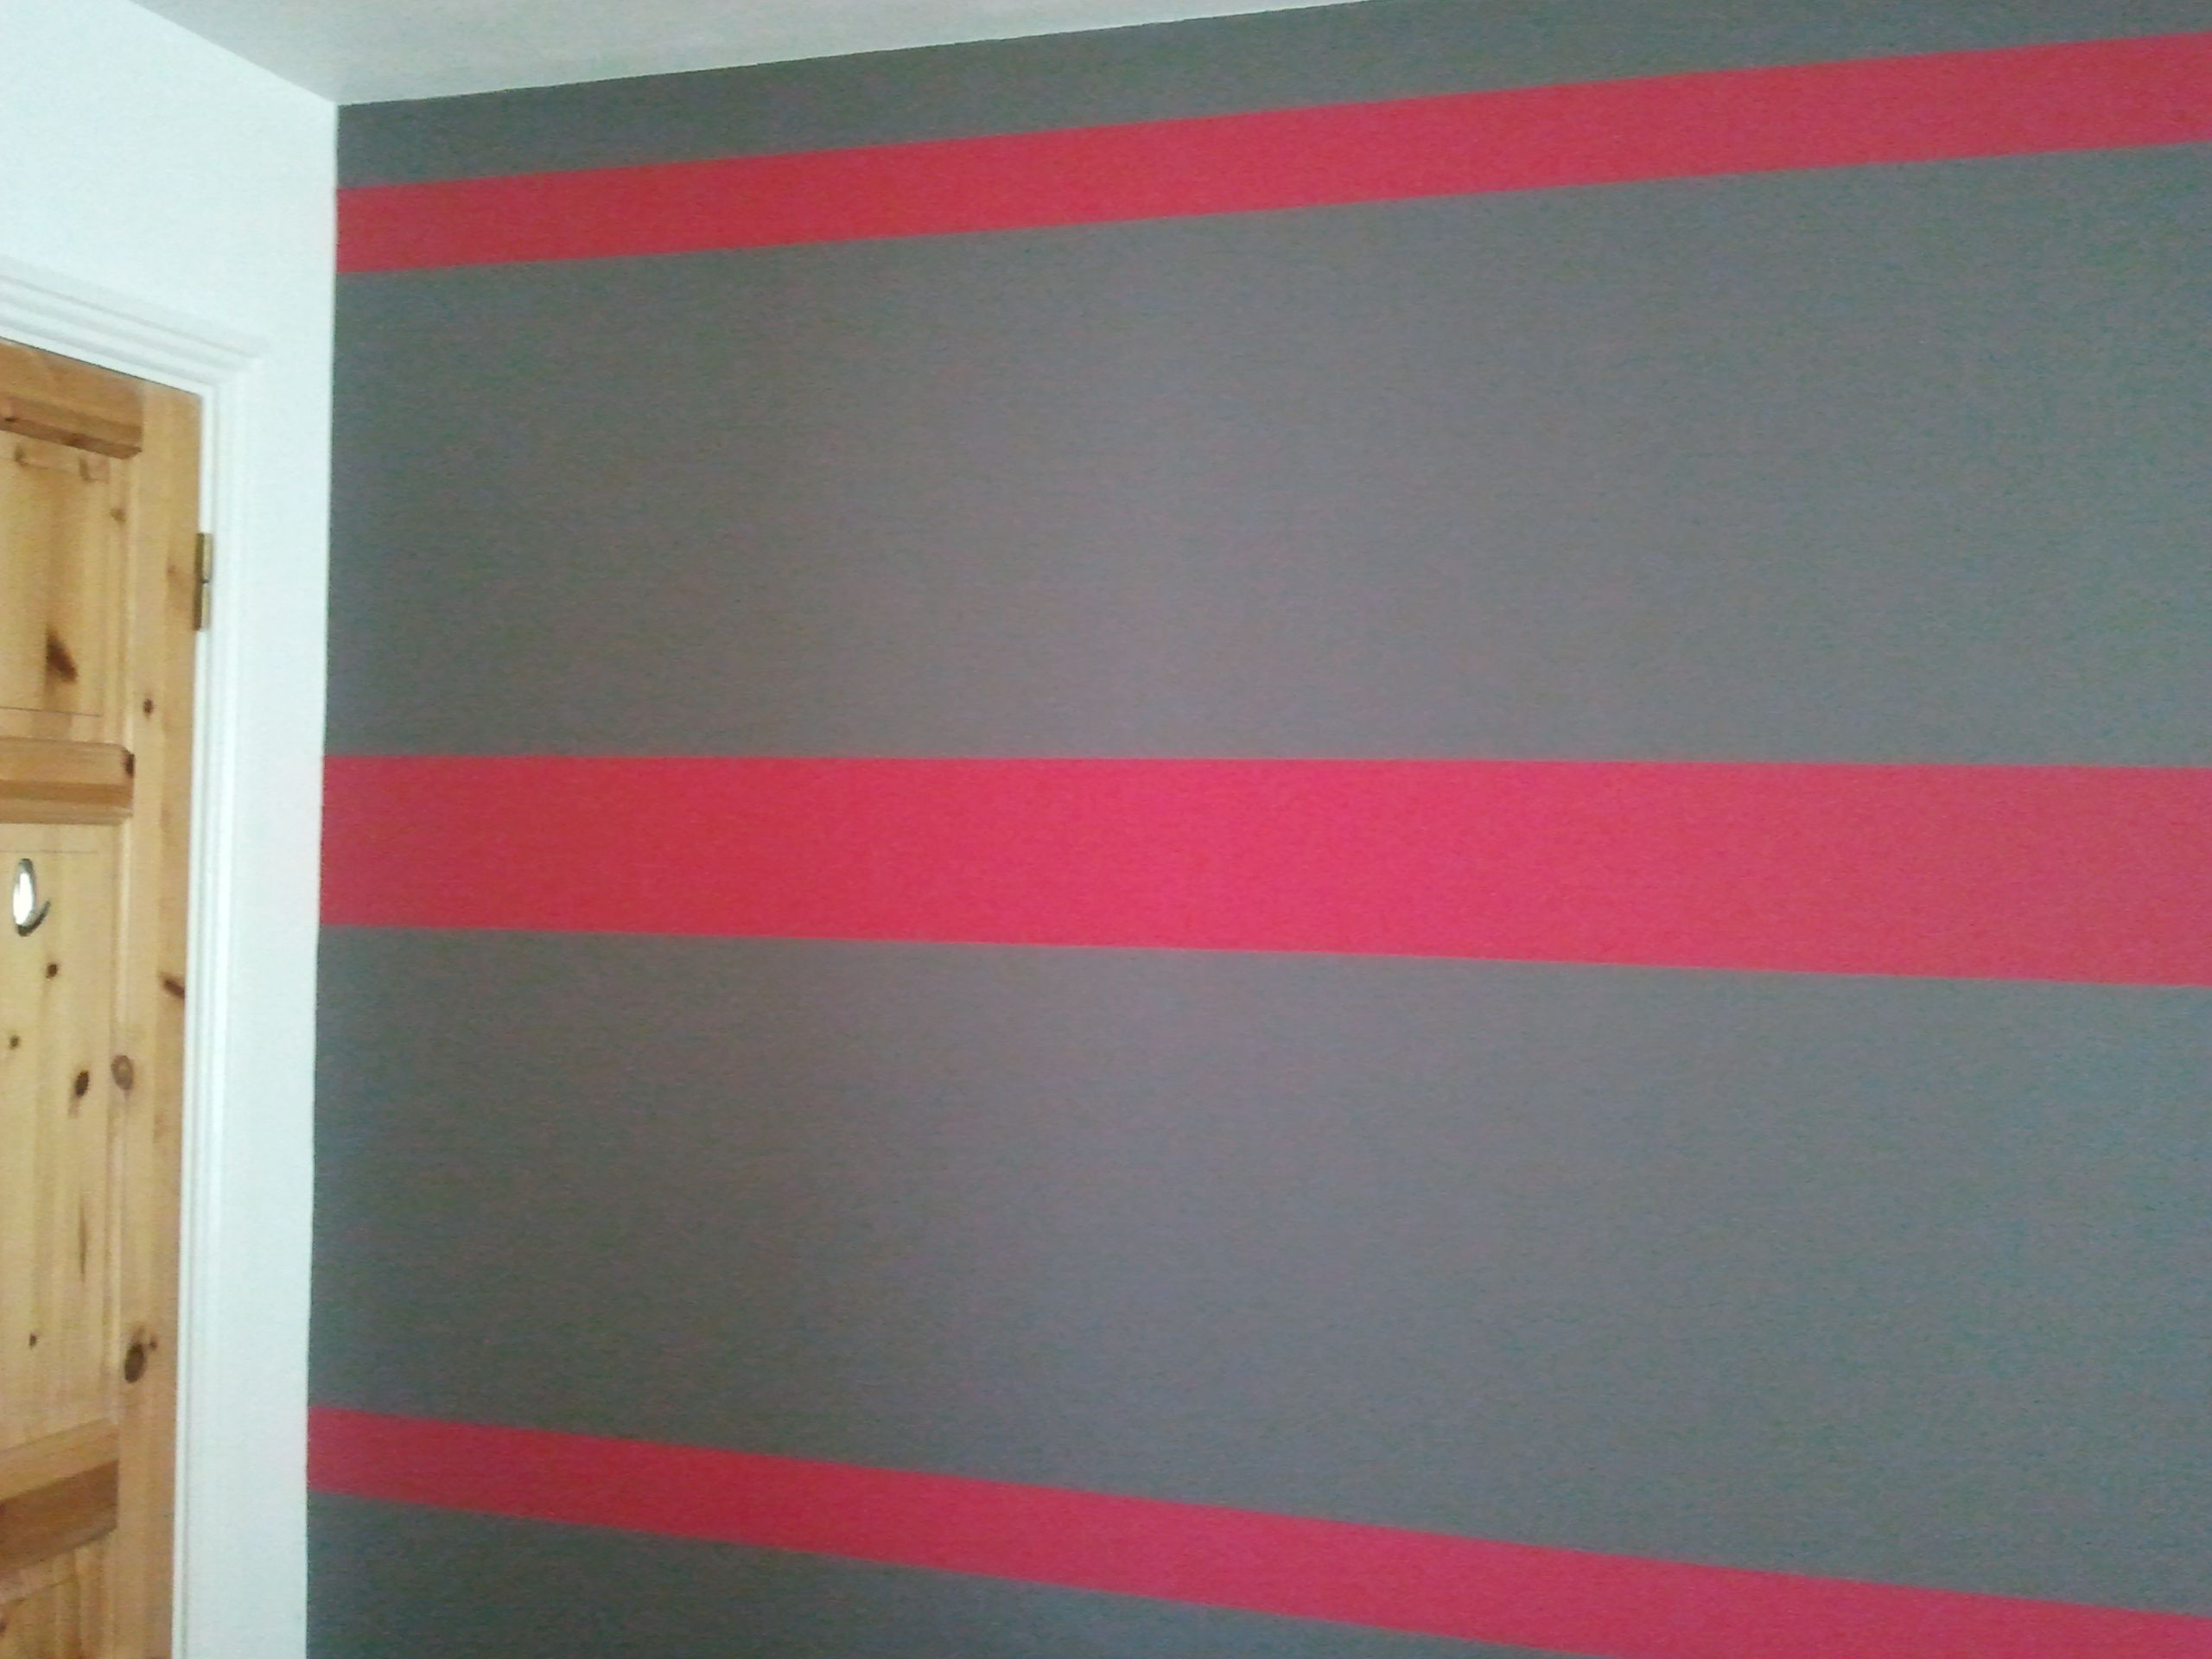 painted raspberry pink stripes on grey bedroom wall using masking